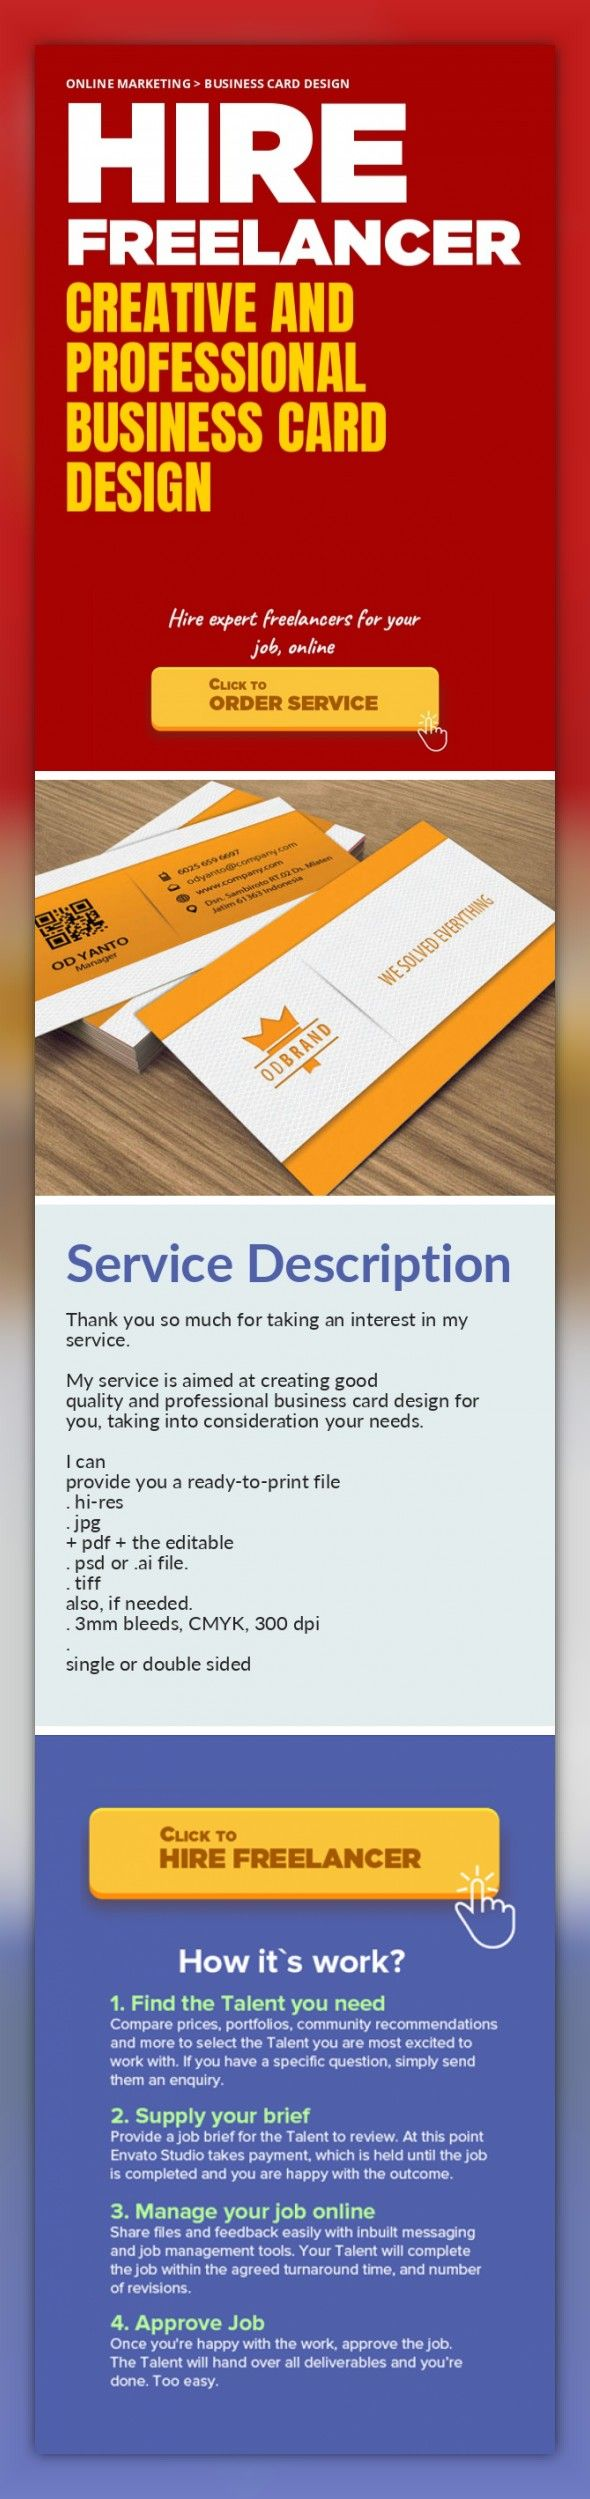 Creative and Professional Business Card Design Online Marketing, Business Card Design   Thank you so much for taking an interest in my service.    My service is aimed at creating good quality and professional business card design for you, taking into consideration your needs.    I can provide you a ready-to-print file   . hi-res   . jpg + pdf + the editable   . psd or .ai file.   . tiff also, if n...